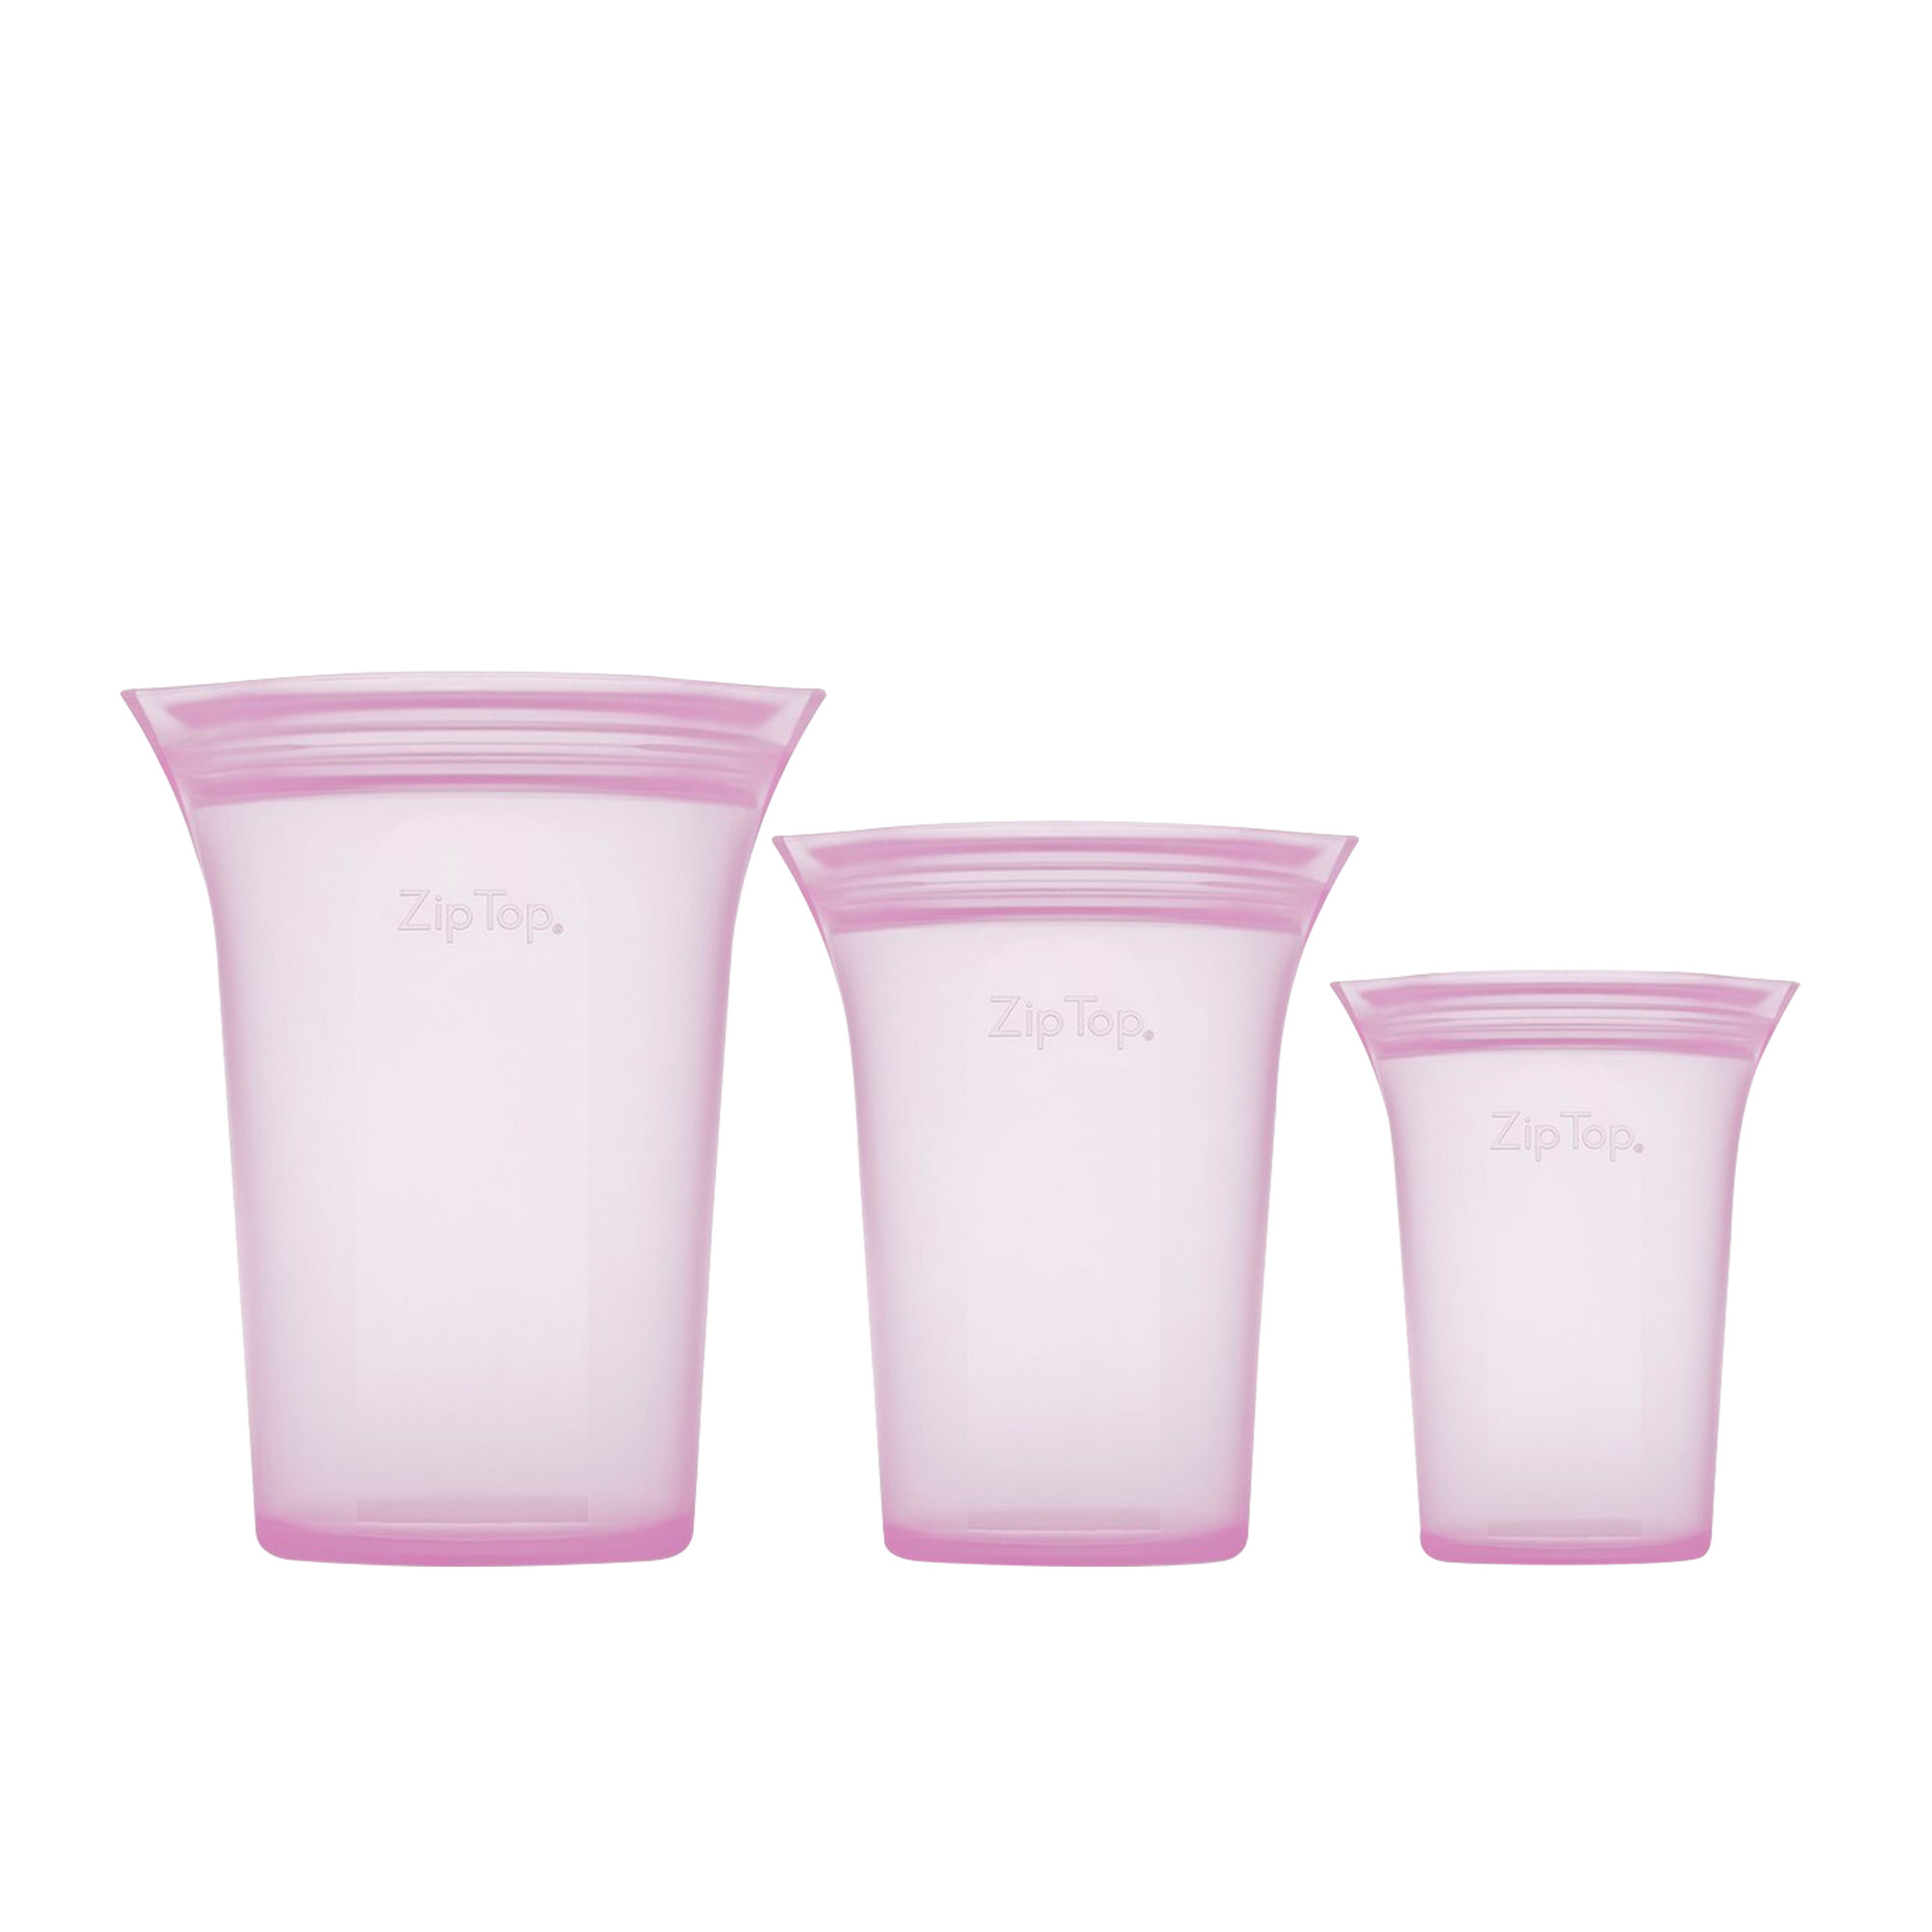 Zip Top 3pc Platinum Silicone Cup Container Set Lavender